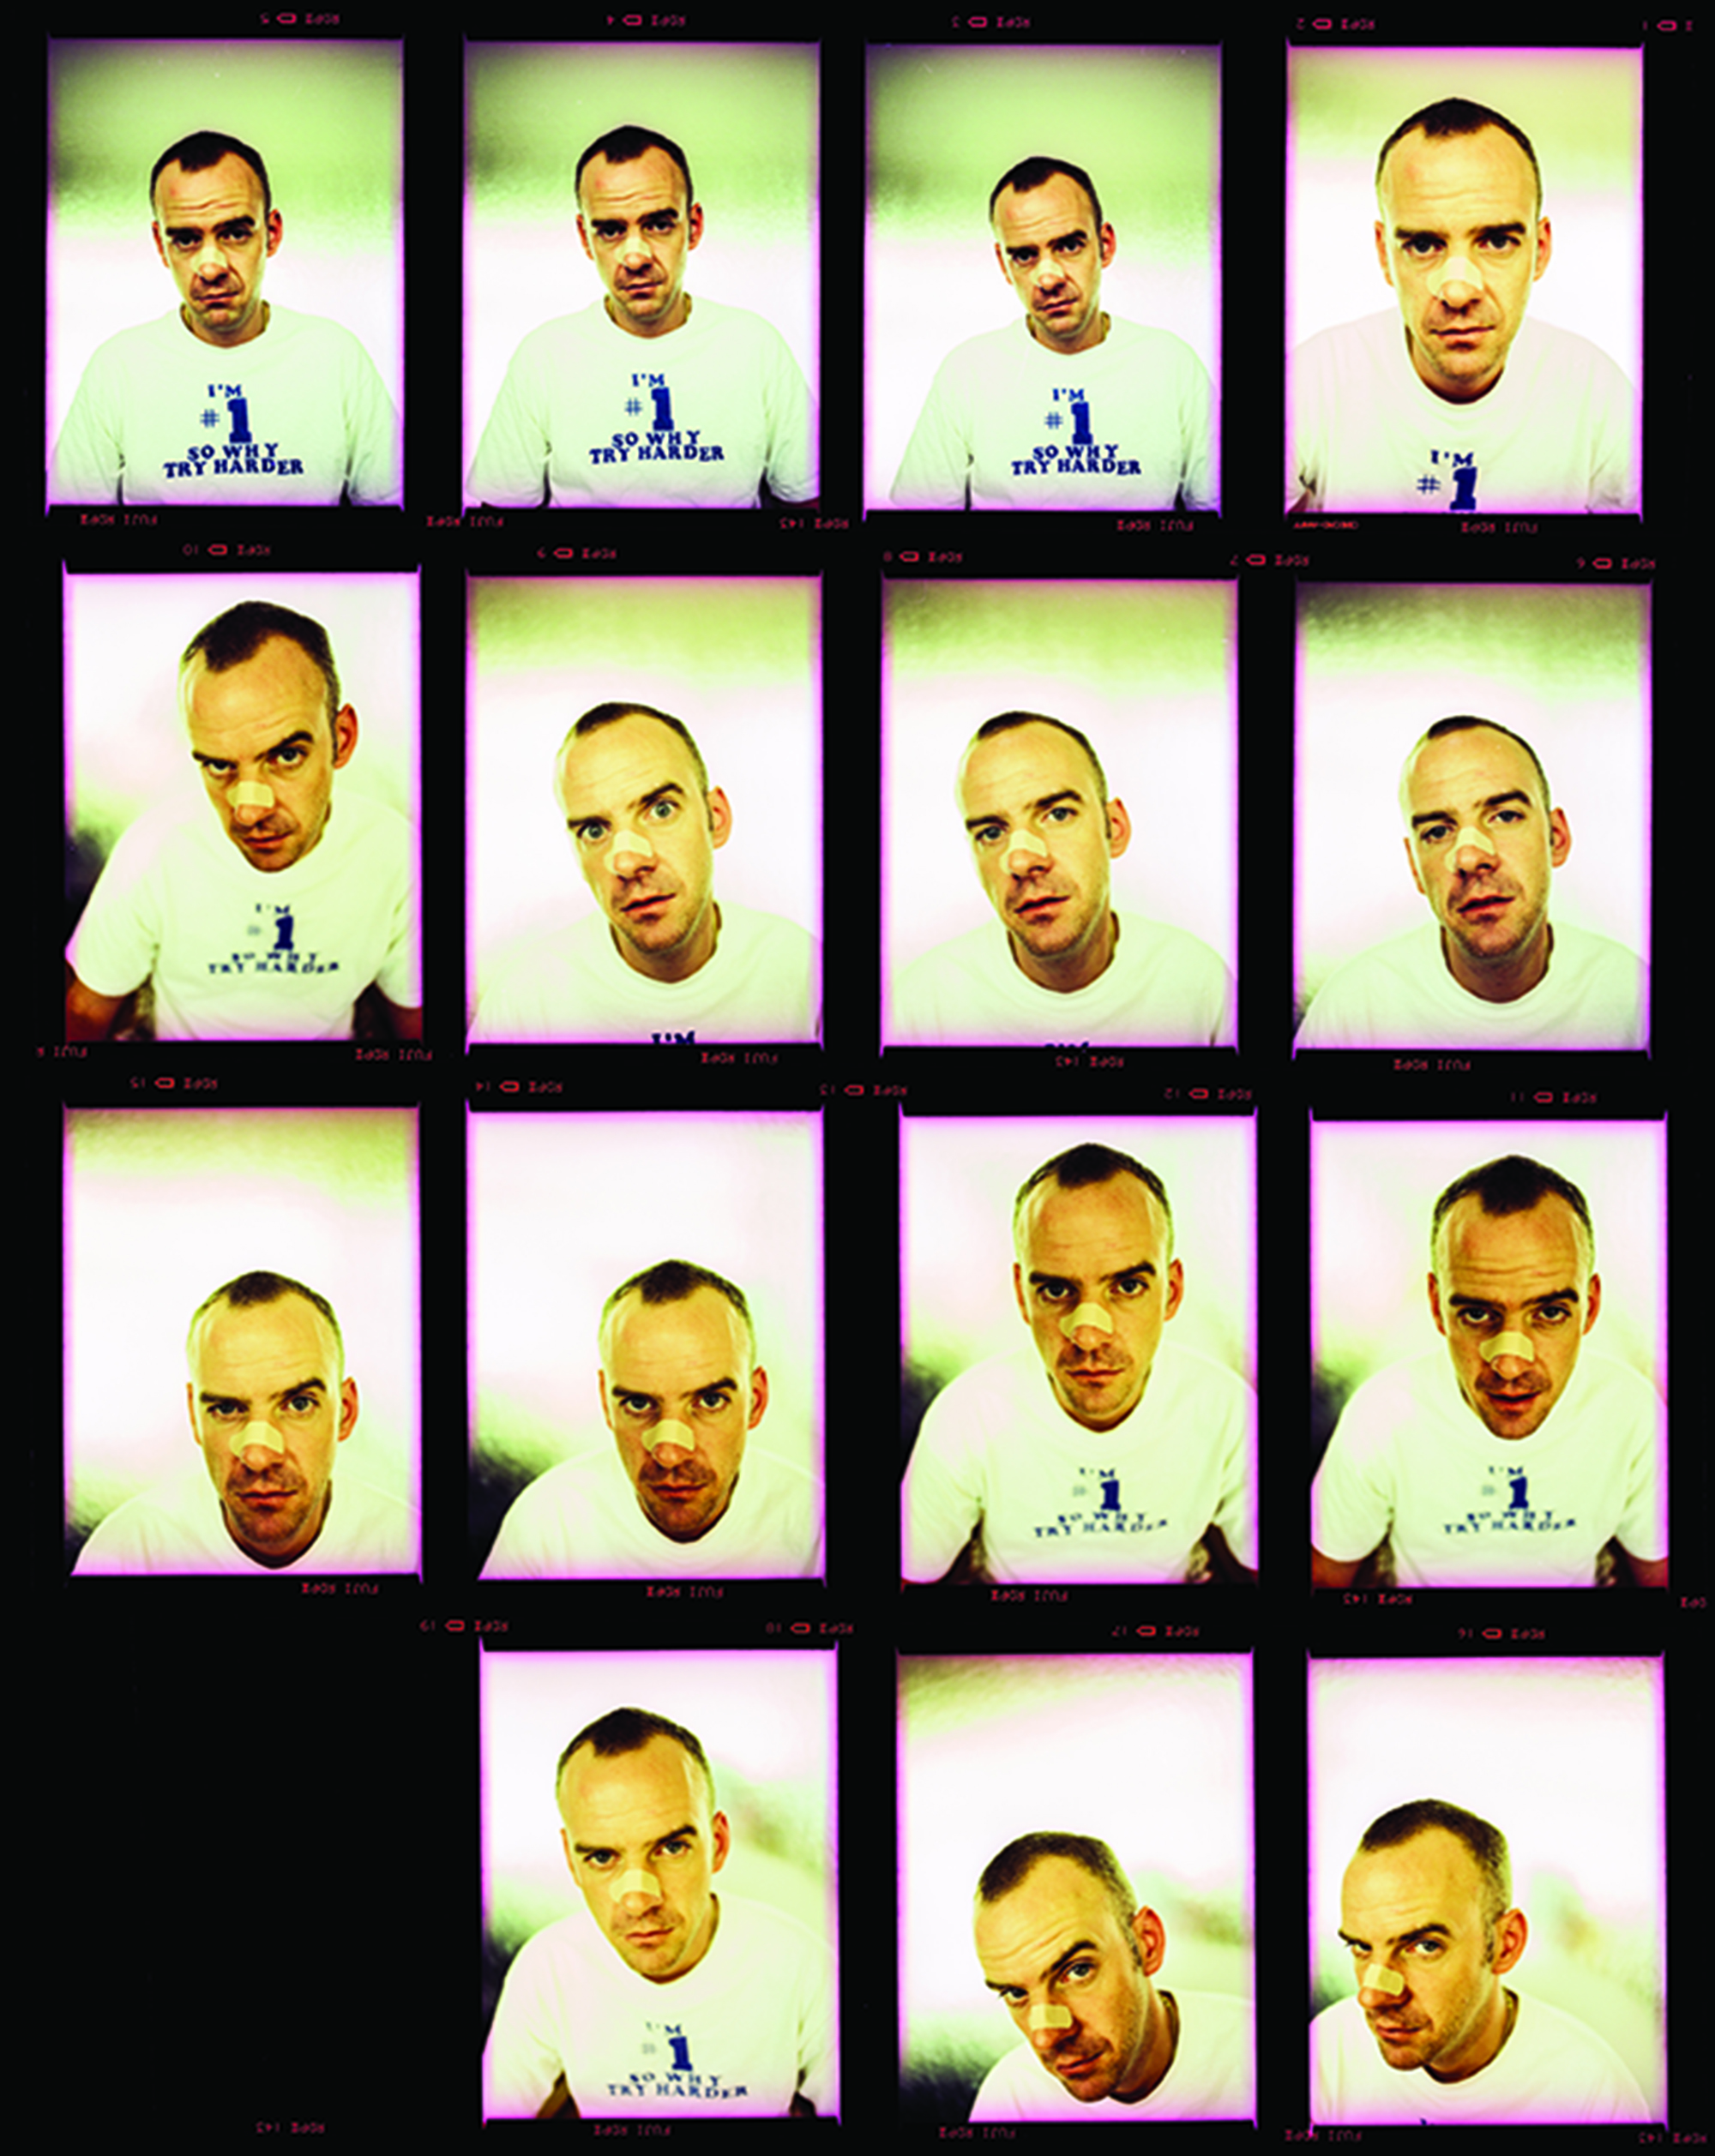 Fatboy Slim shot by Eddie Otchere, New York (1997) - Image courtesy of Eddie Otchere for Homesick Magazine Issue #3   www.otchere.work